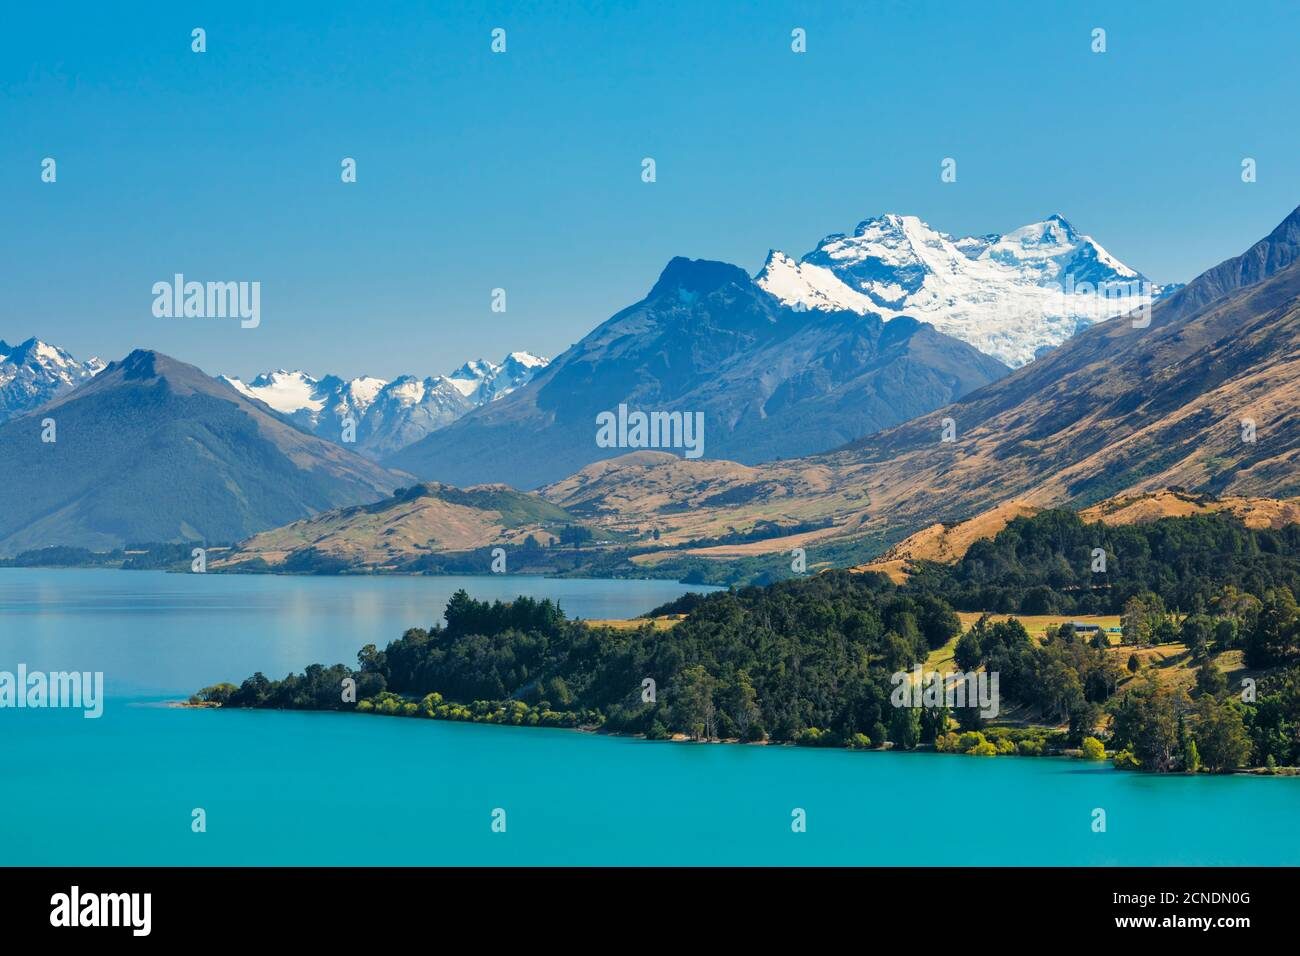 Lake Wakatipu and snowcapped Mount Earnslaw, Queenstown, Otago, South Island, New Zealand, Pacific Stock Photo